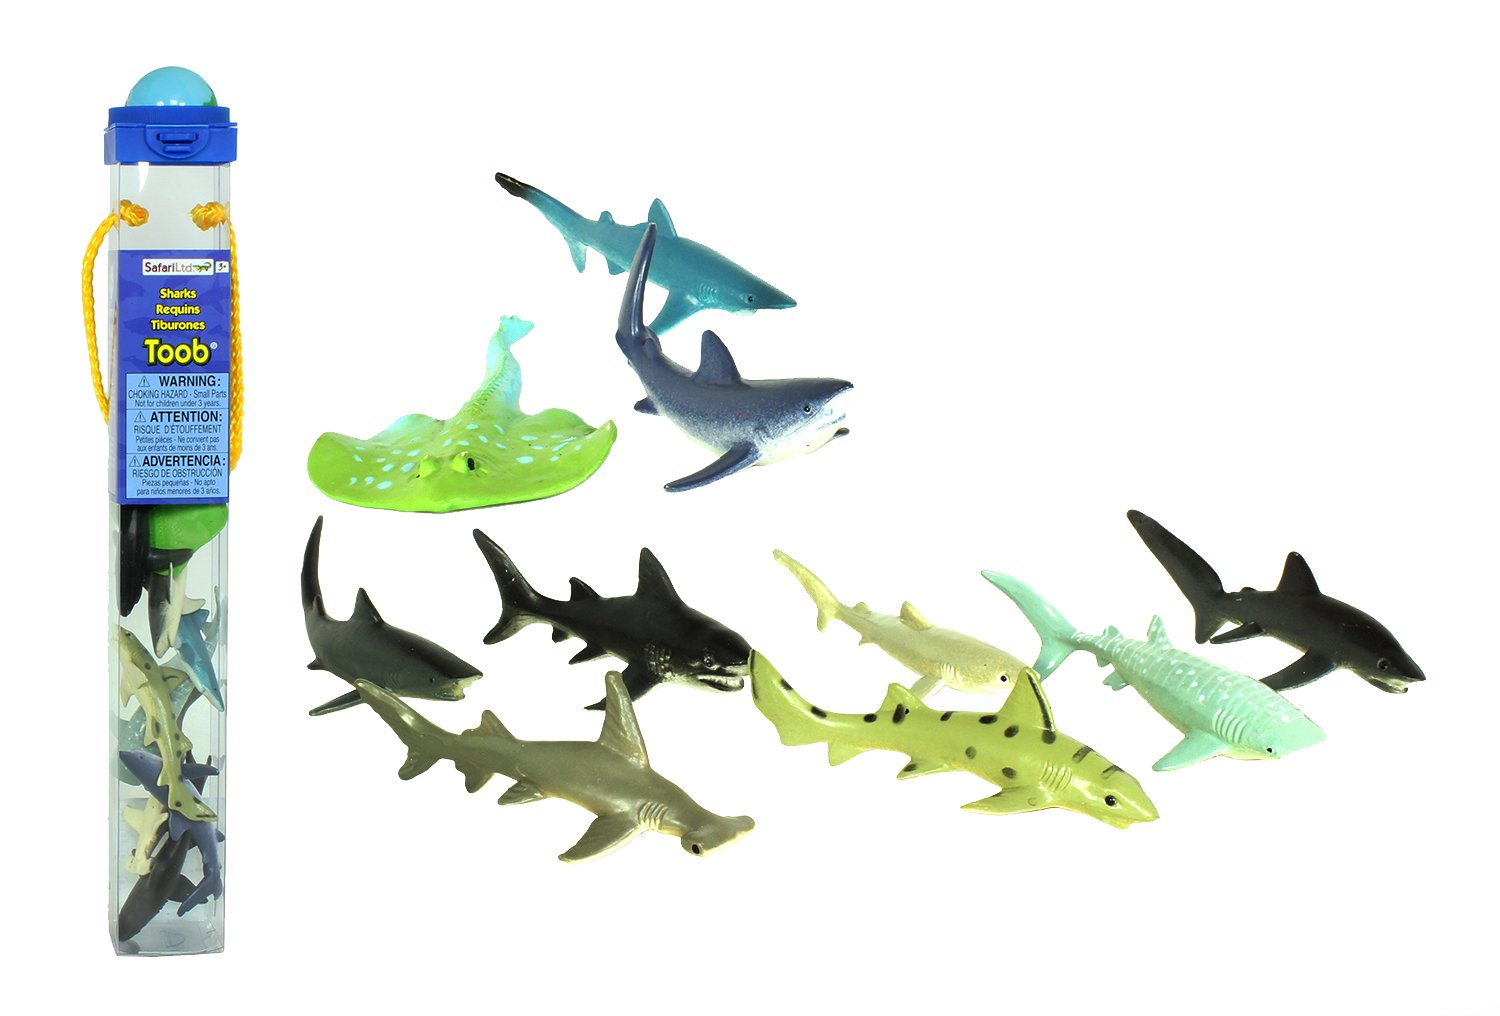 Safari Ltd Sharks TOOB